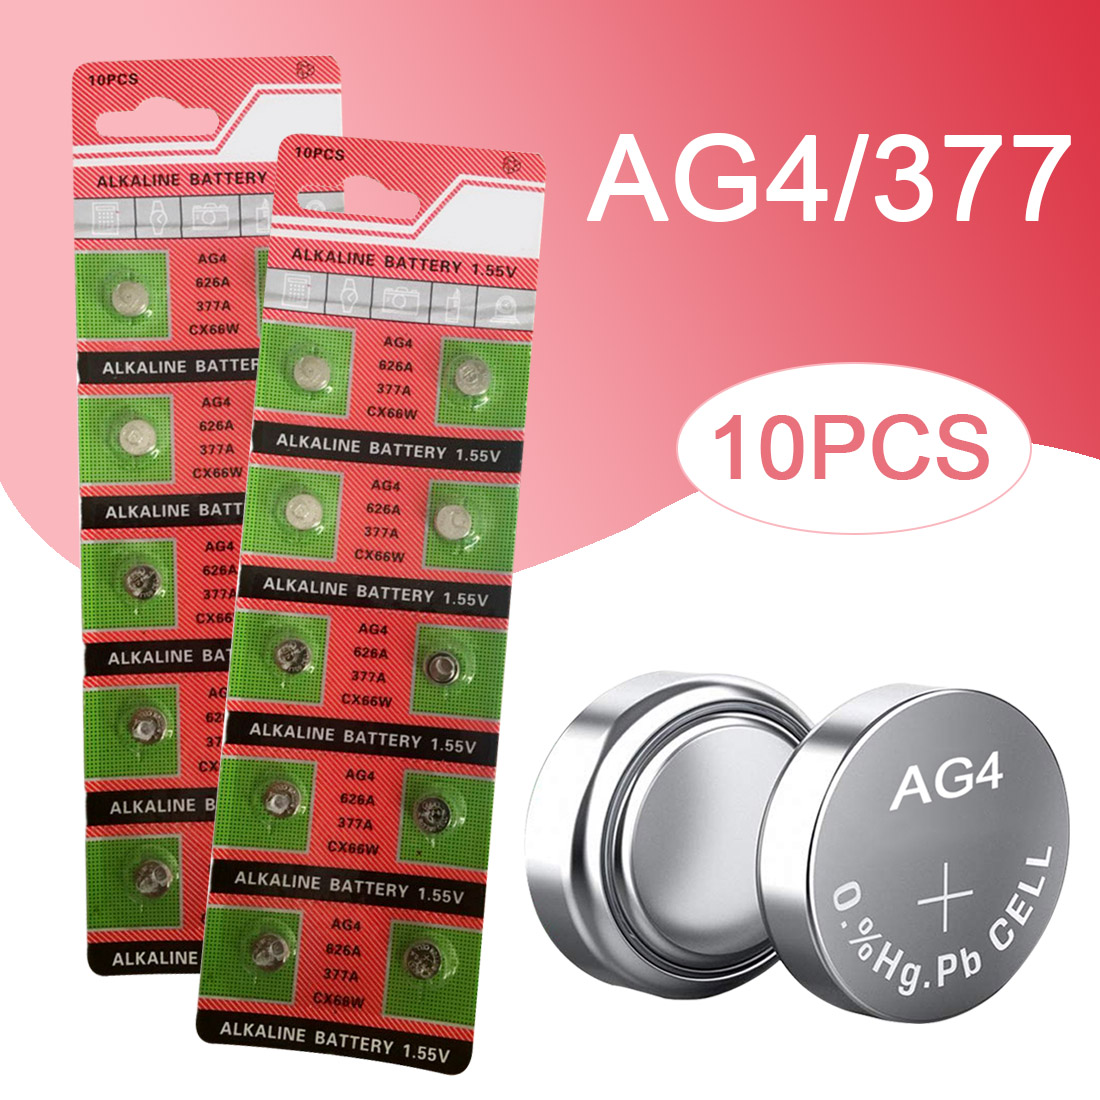 10PCS AG4 Watch Battery 626A 377A CX66W Coin Cell Alkaline Batteries for Toy Calculator Laser Pointer Clock Watch Cameras 1.55V